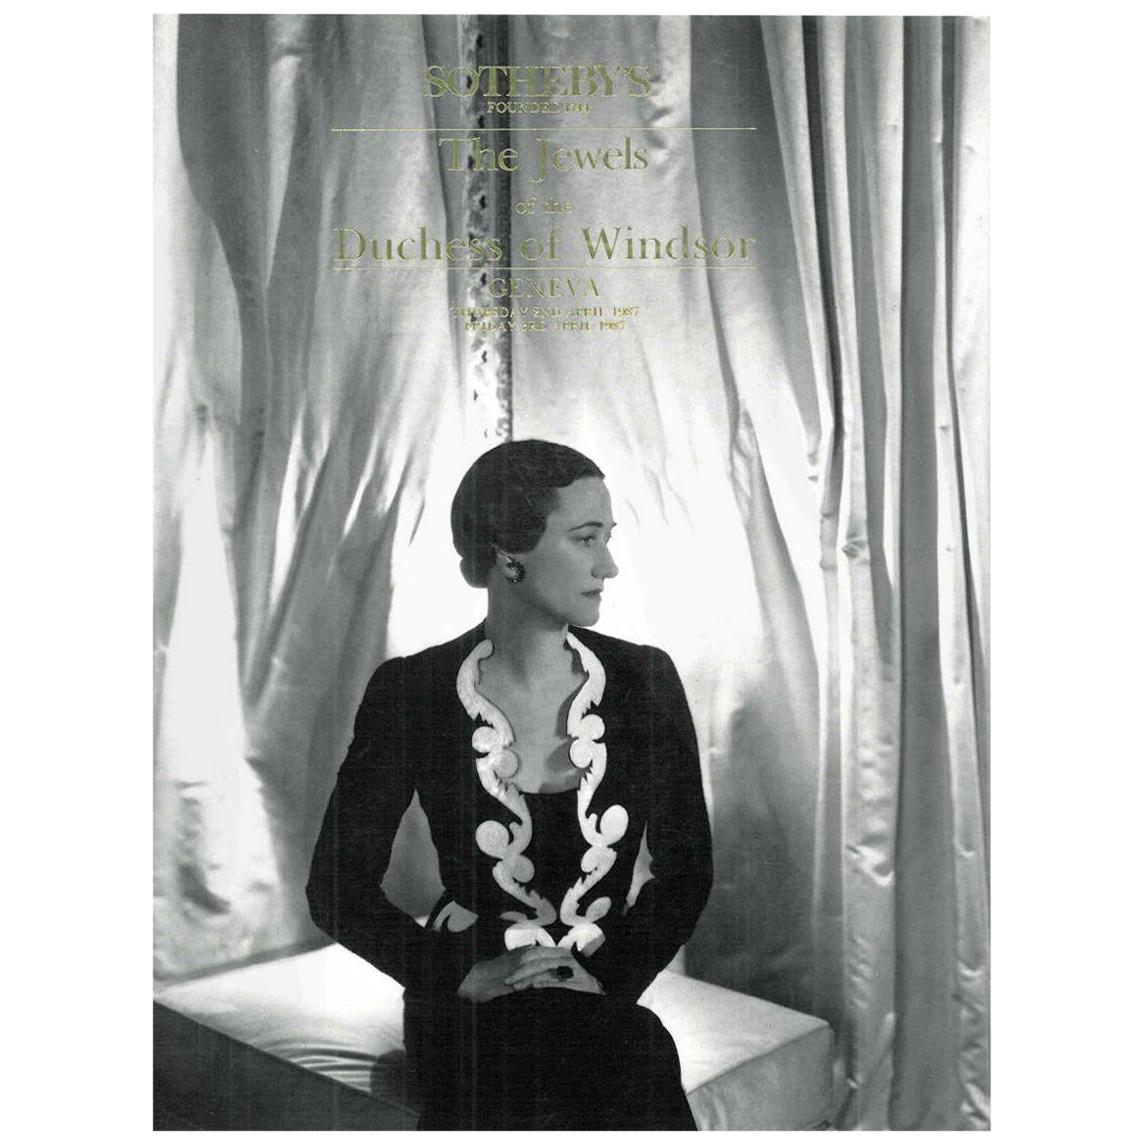 Book of the Jewels of the Duchess of Windsor, Sotheby's, April 1987